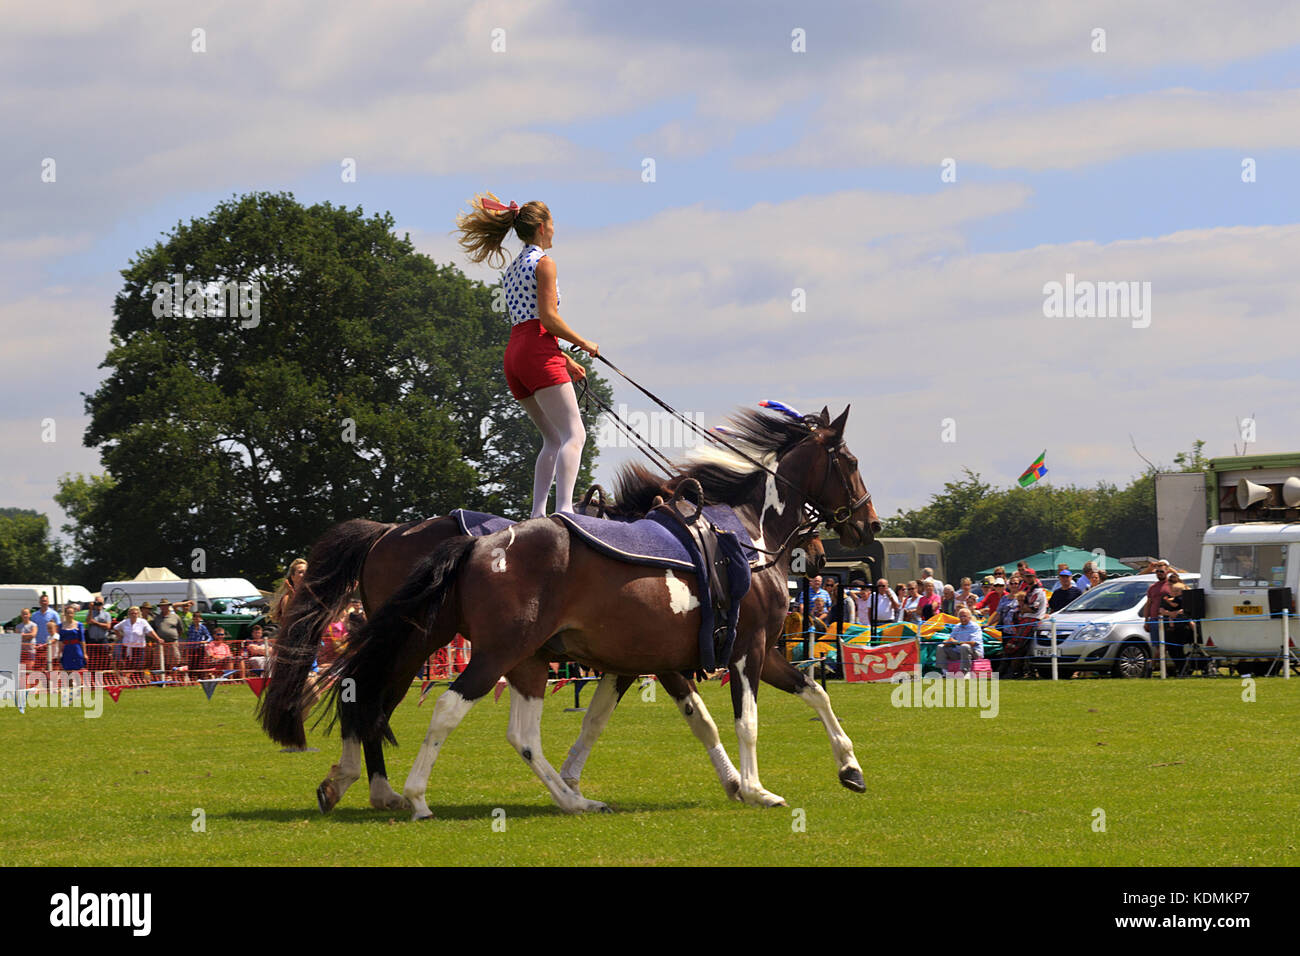 Horse Riding display at the Wrangle Country Show - Stock Image